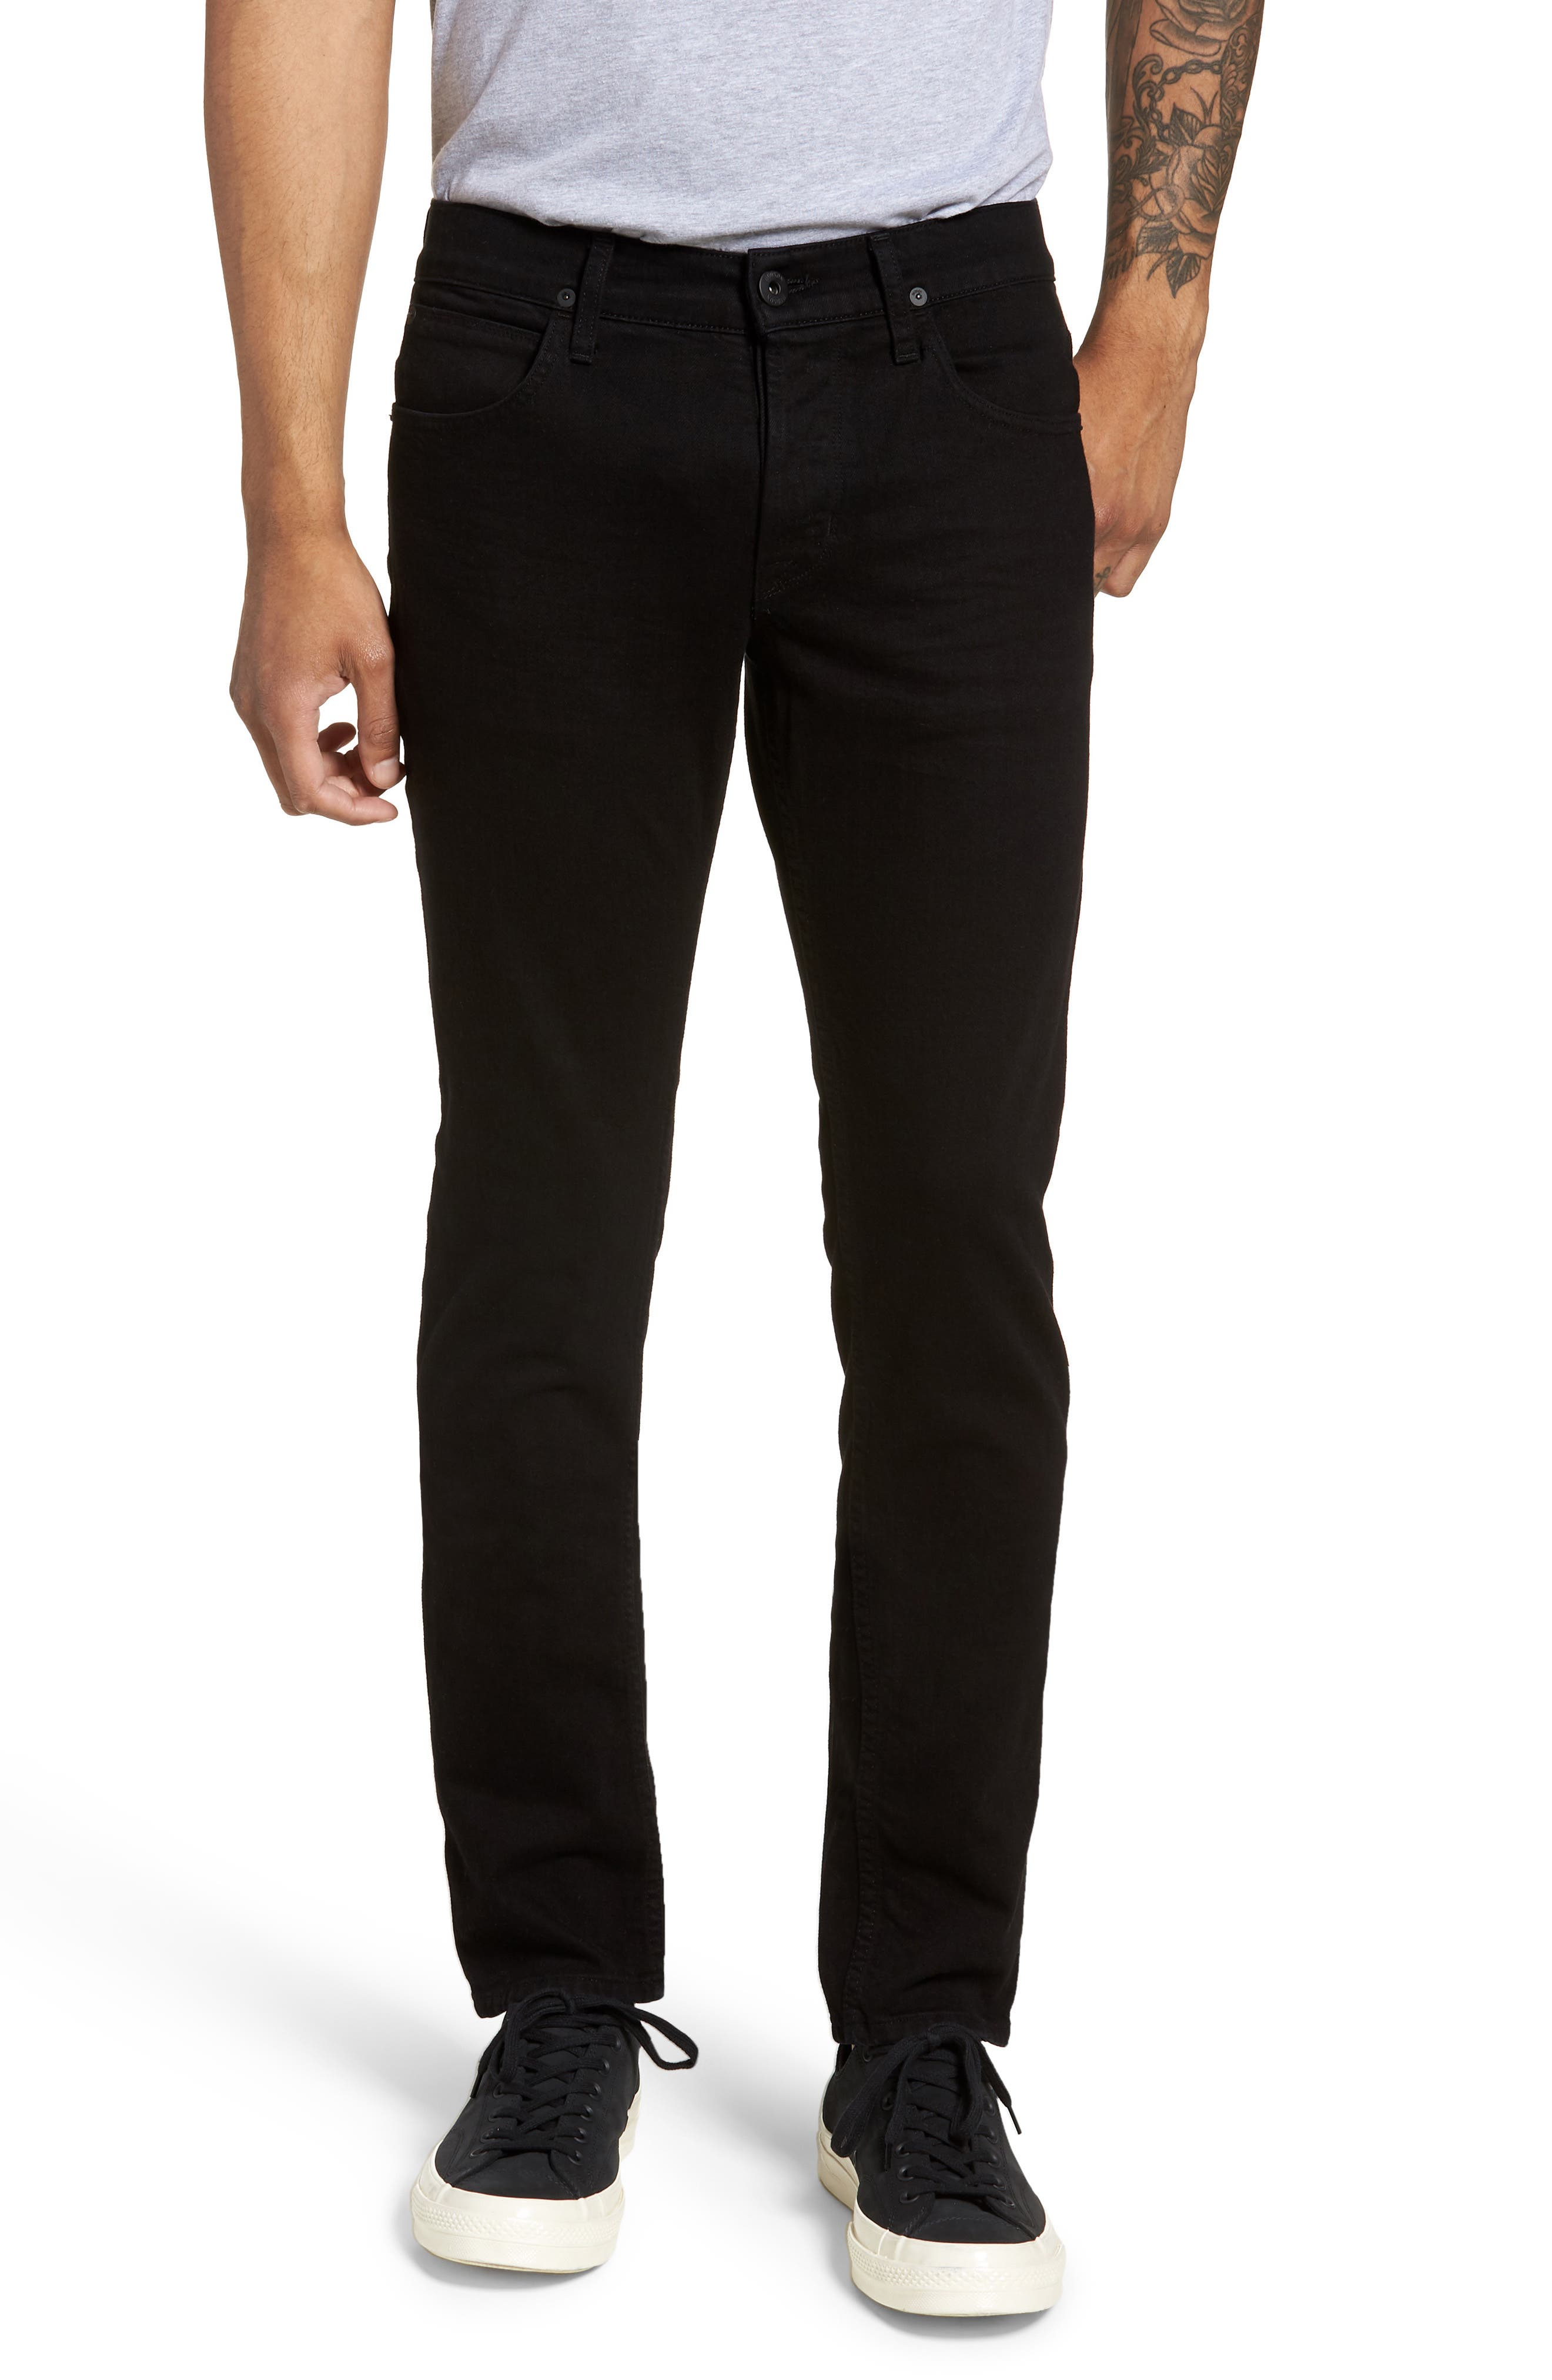 Axl Skinny Fit Jeans,                             Main thumbnail 1, color,                             ABINGTON